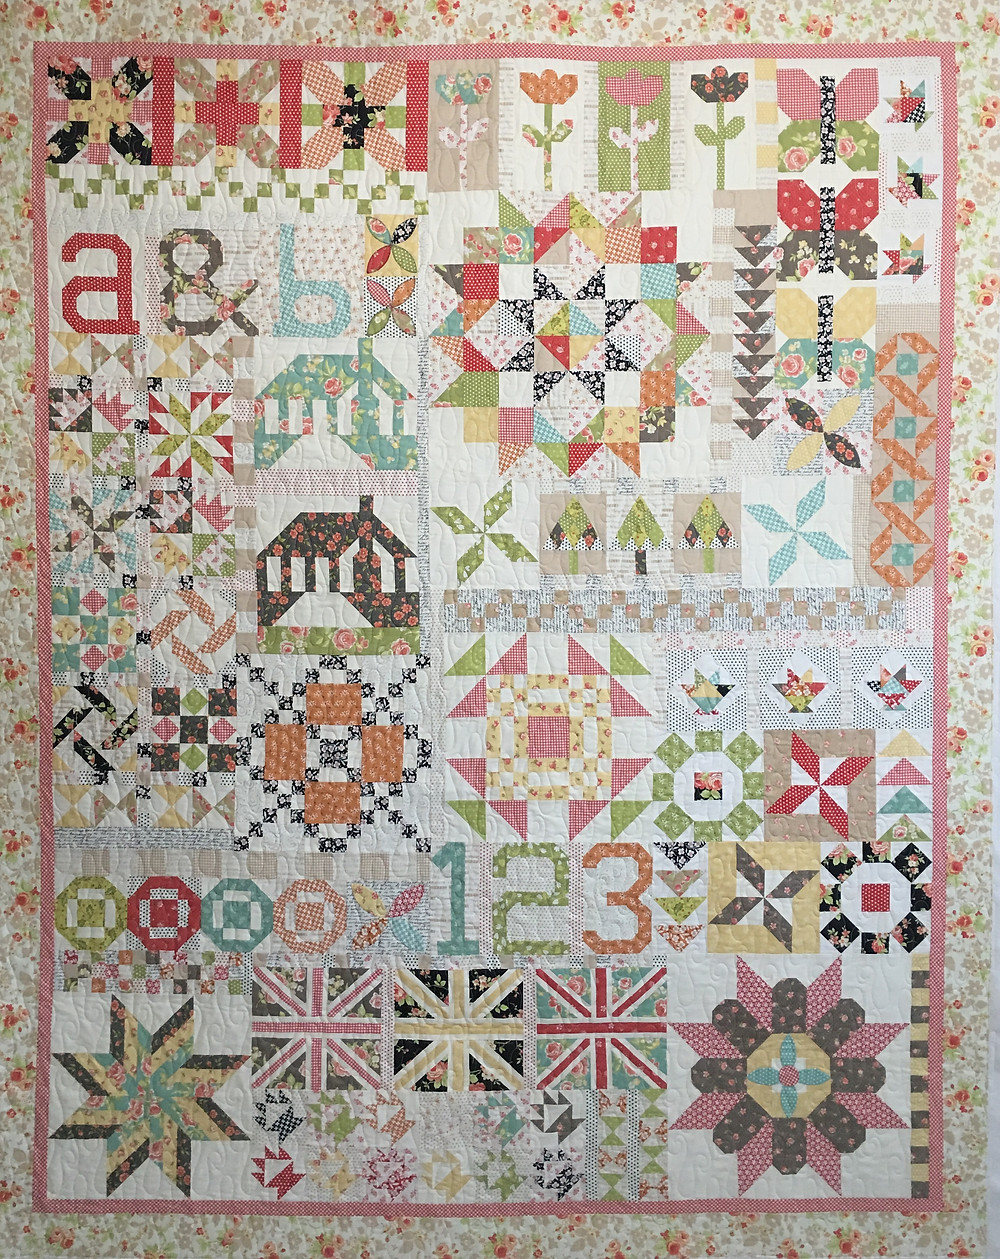 2016 Block of the Month Quilt by Deb Taylor